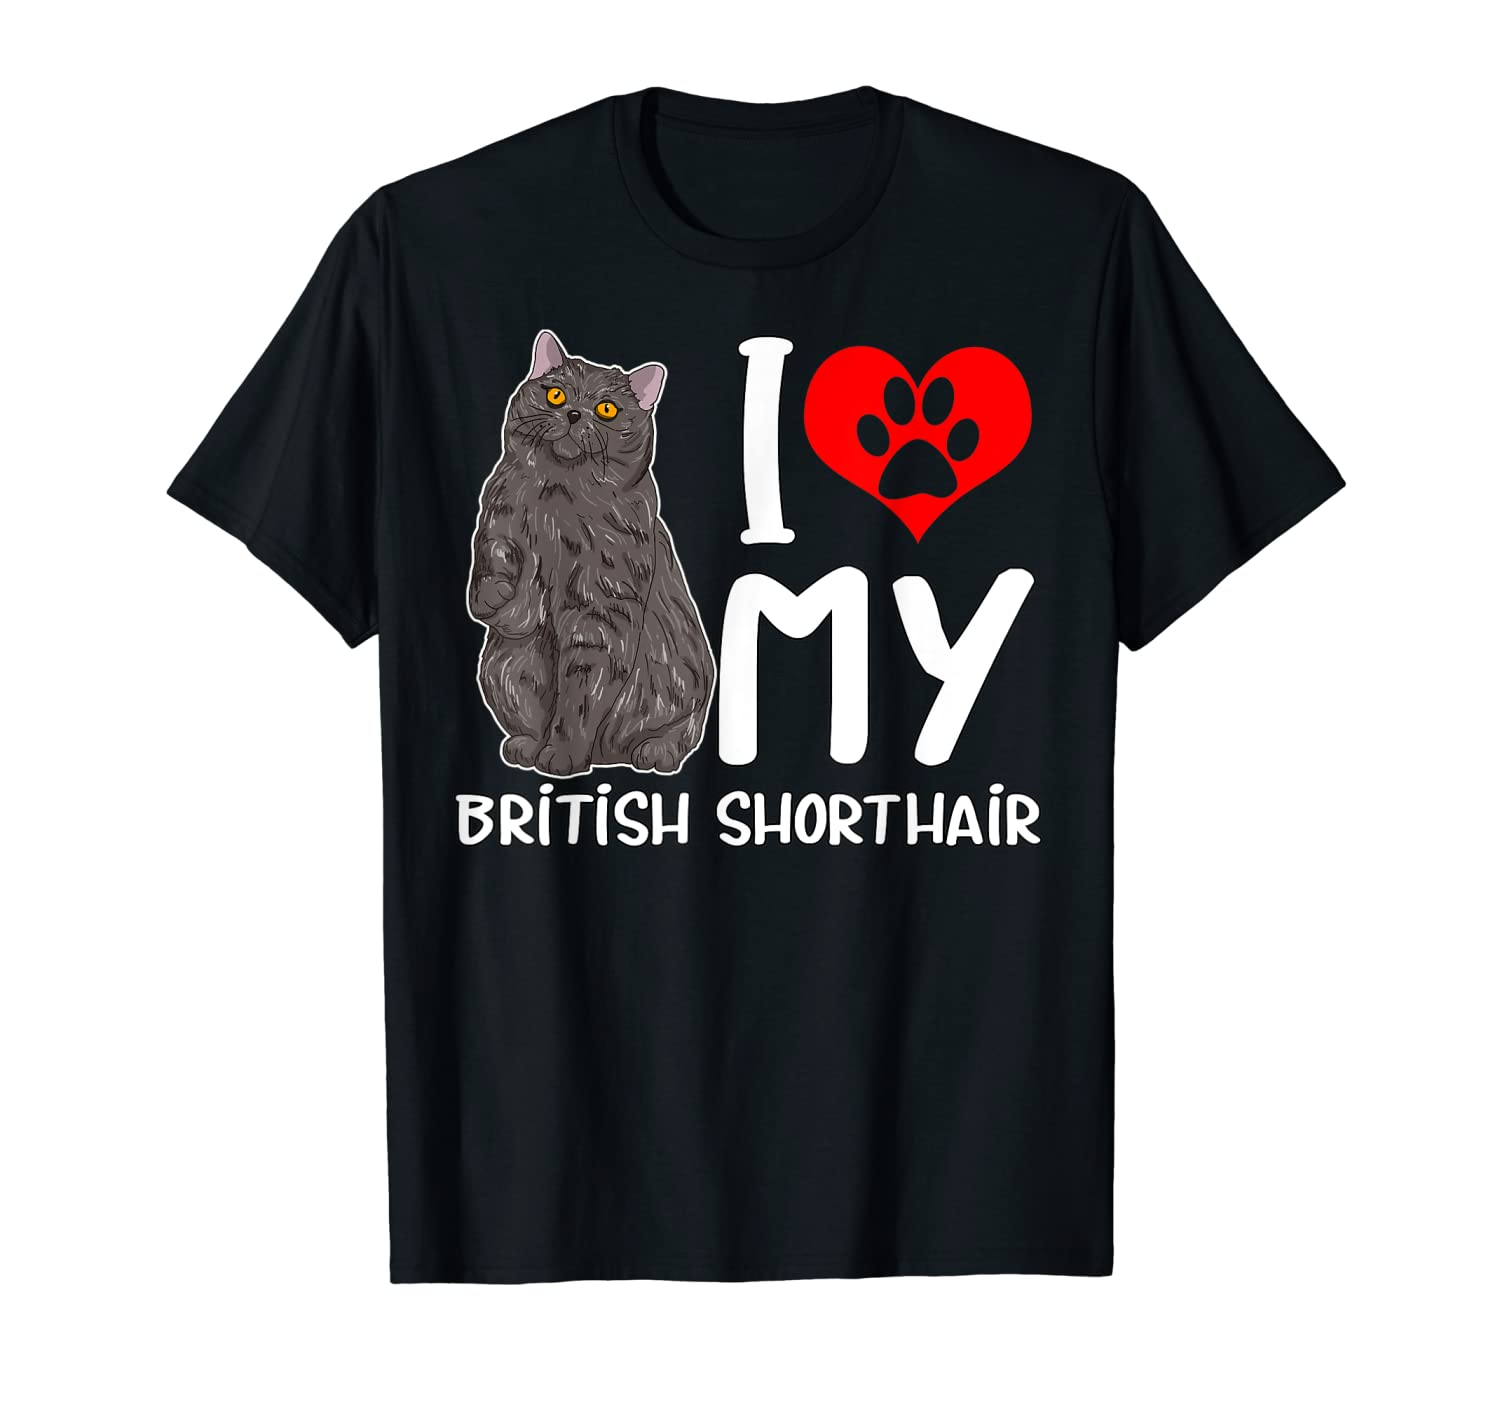 I Love My British Shorthair Cat Gift For Men Women And Kids T-Shirt